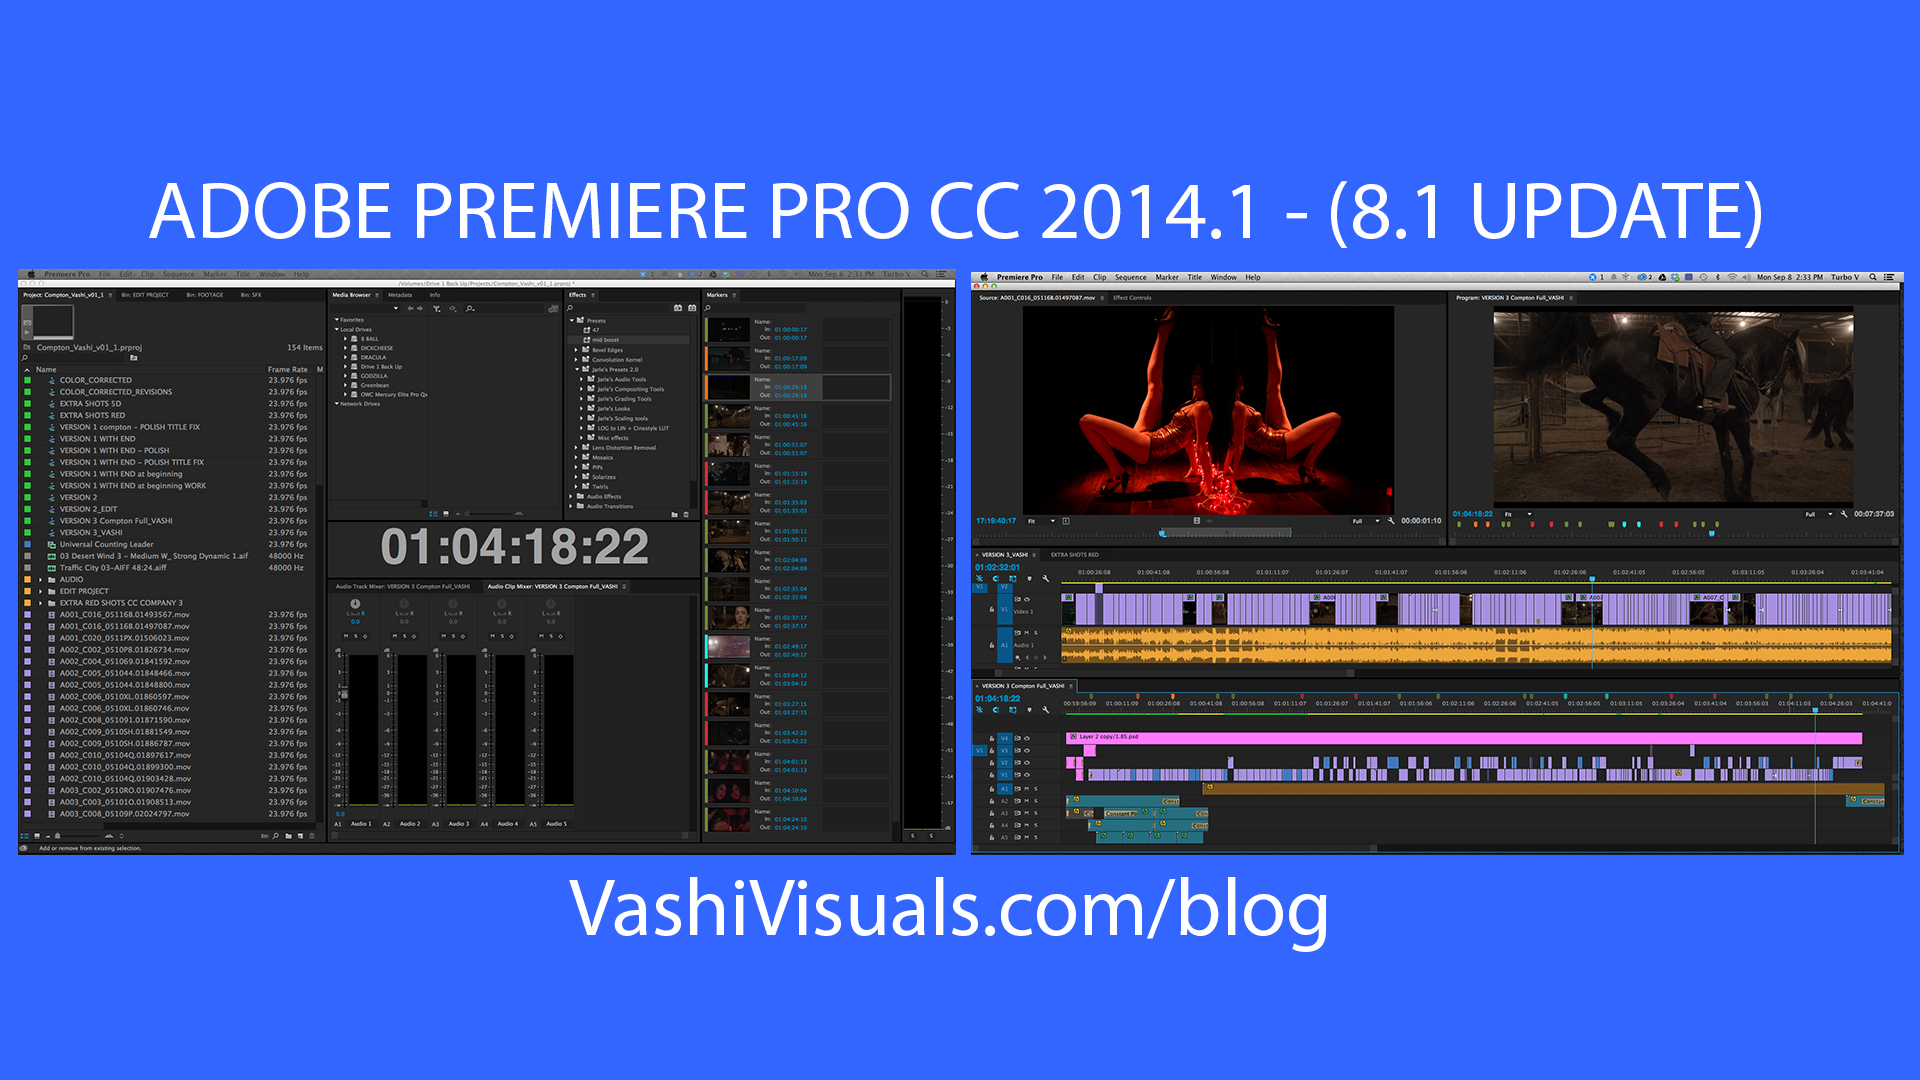 The latest update to Premiere Pro CC 2014